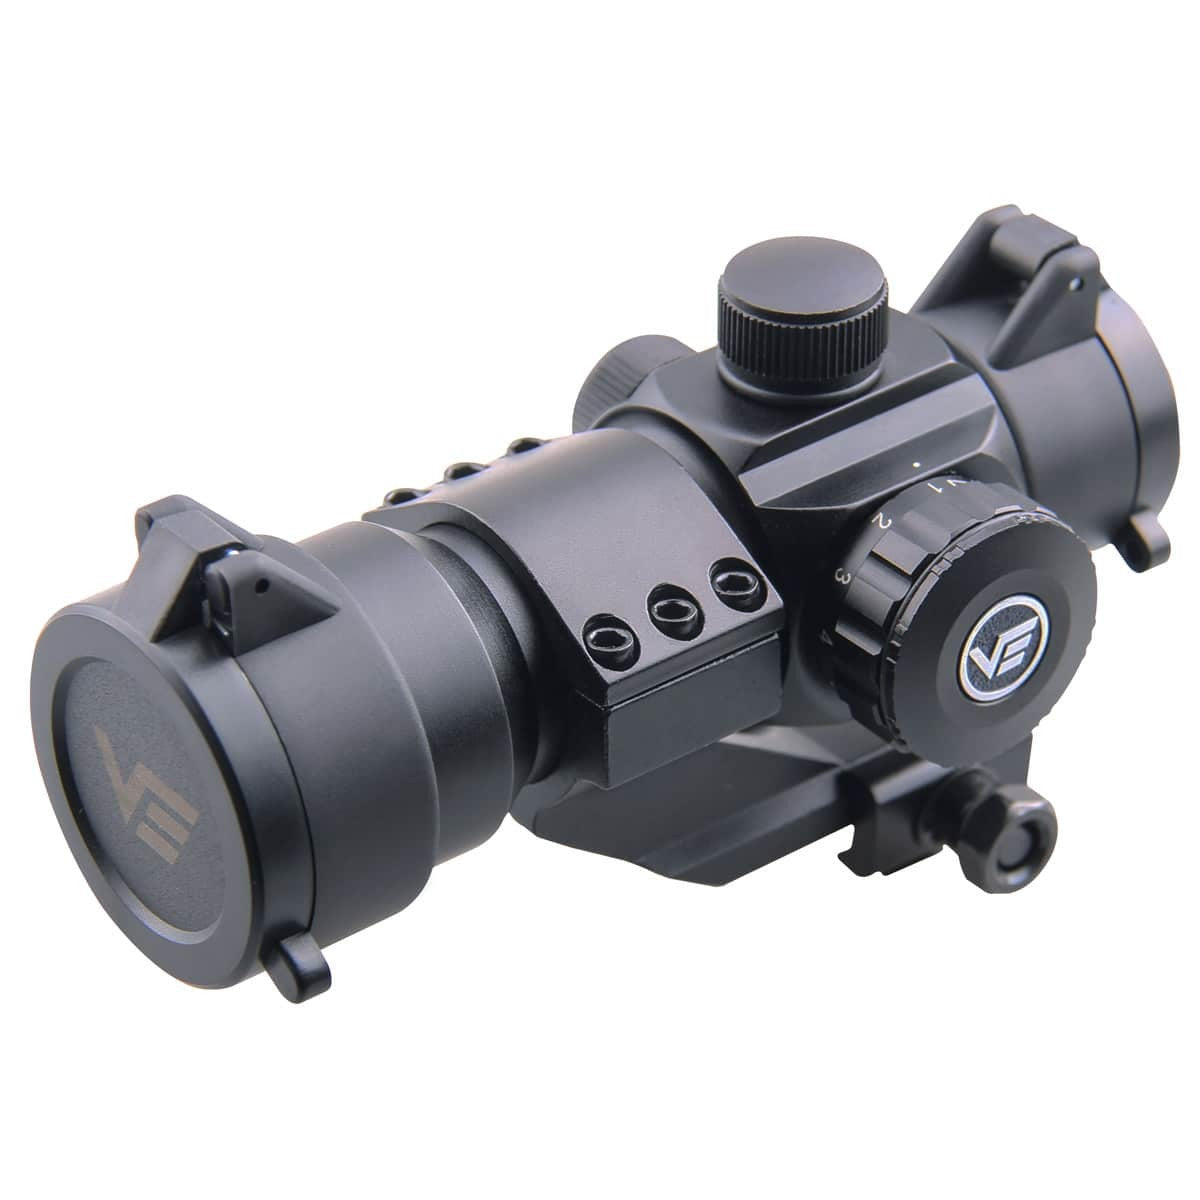 Stinger 1x28 Red Dot Sight